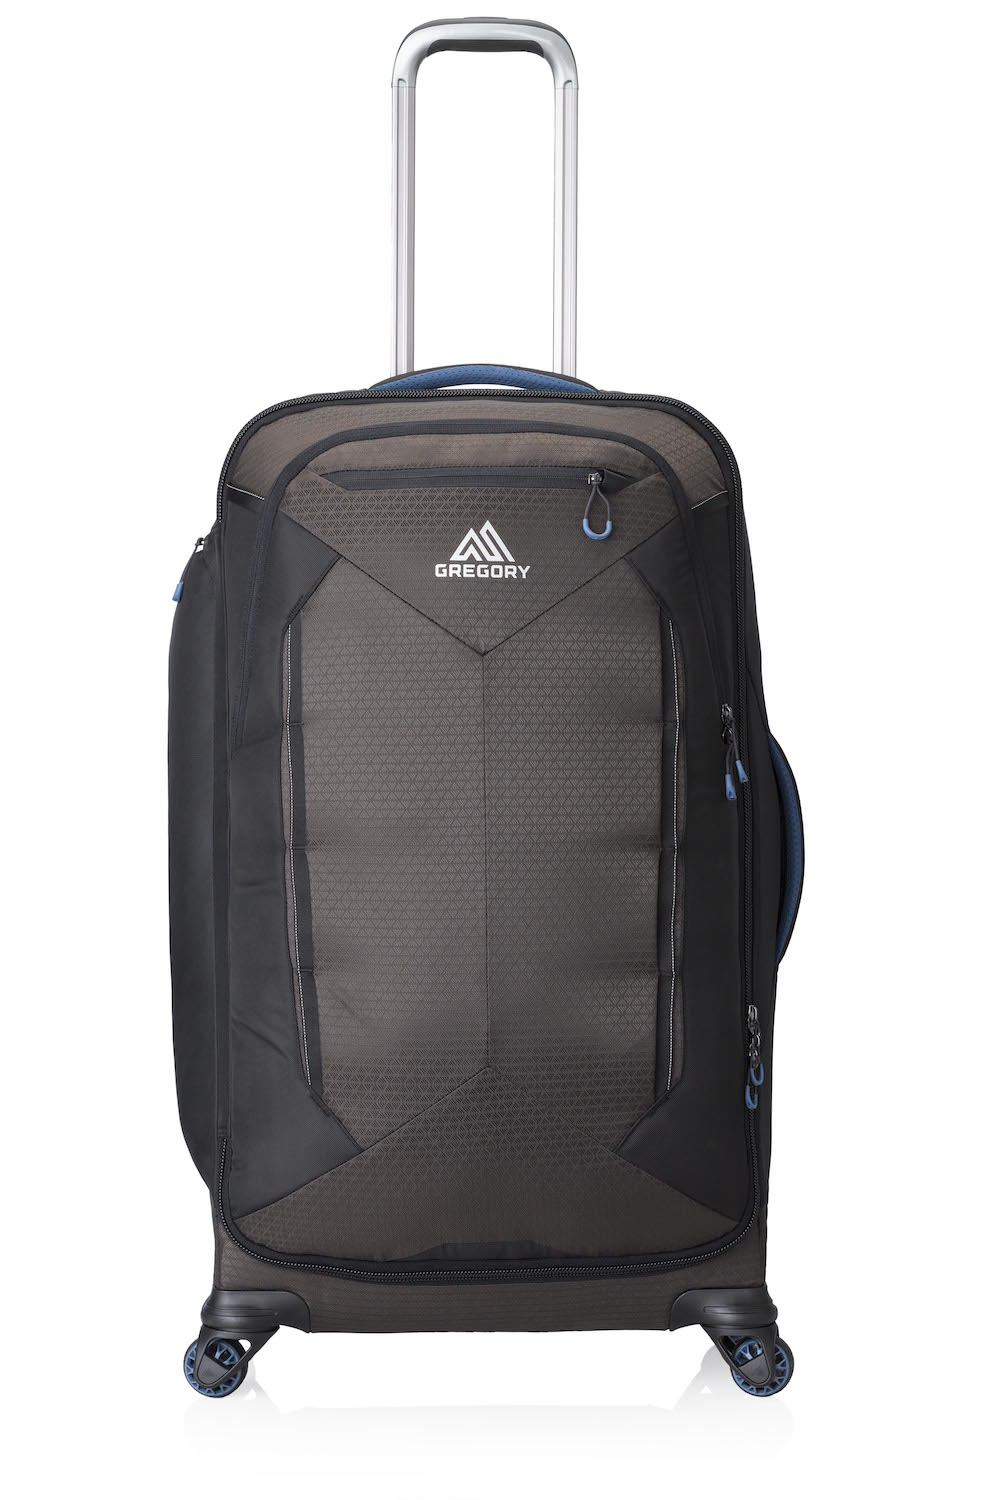 Gregory Quadro Roller 30 - Luggage